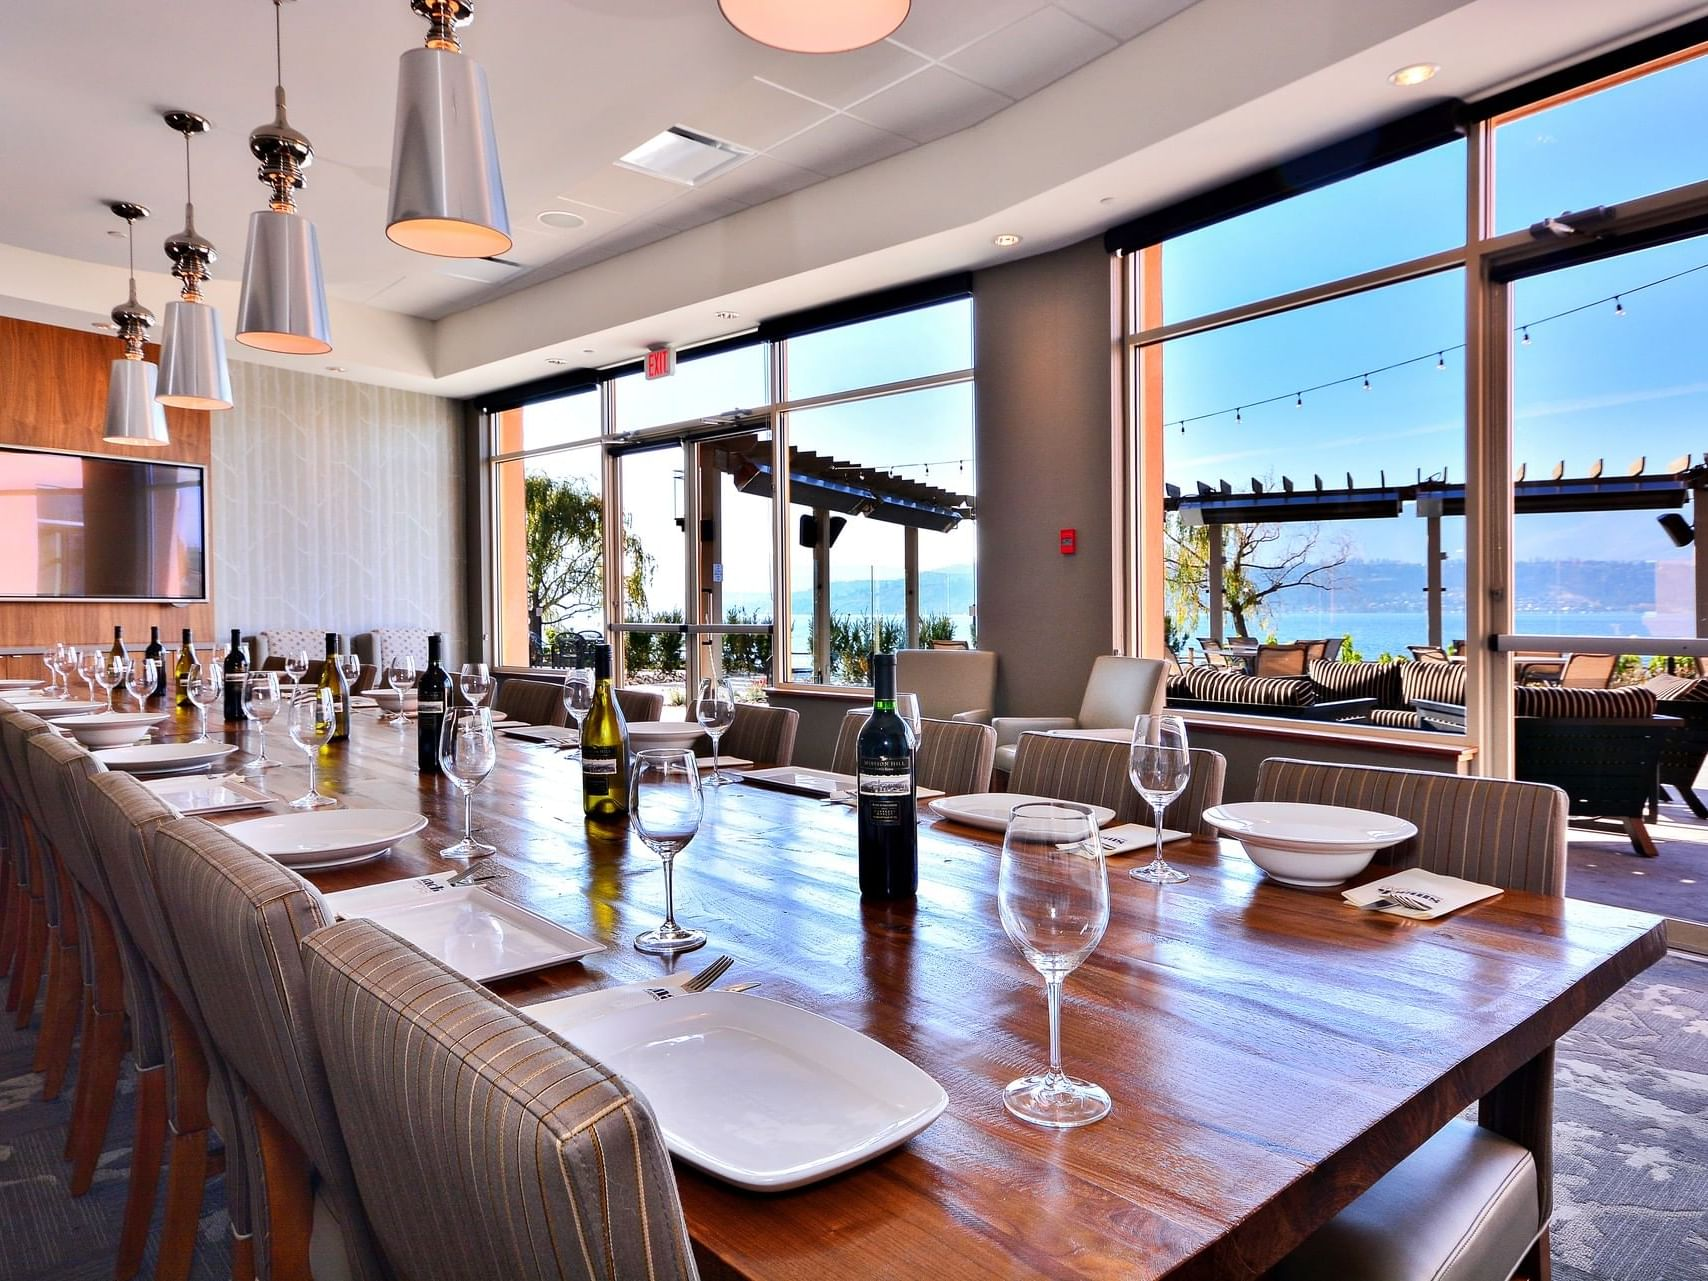 View Room with dining arrangements at Manteo Resort